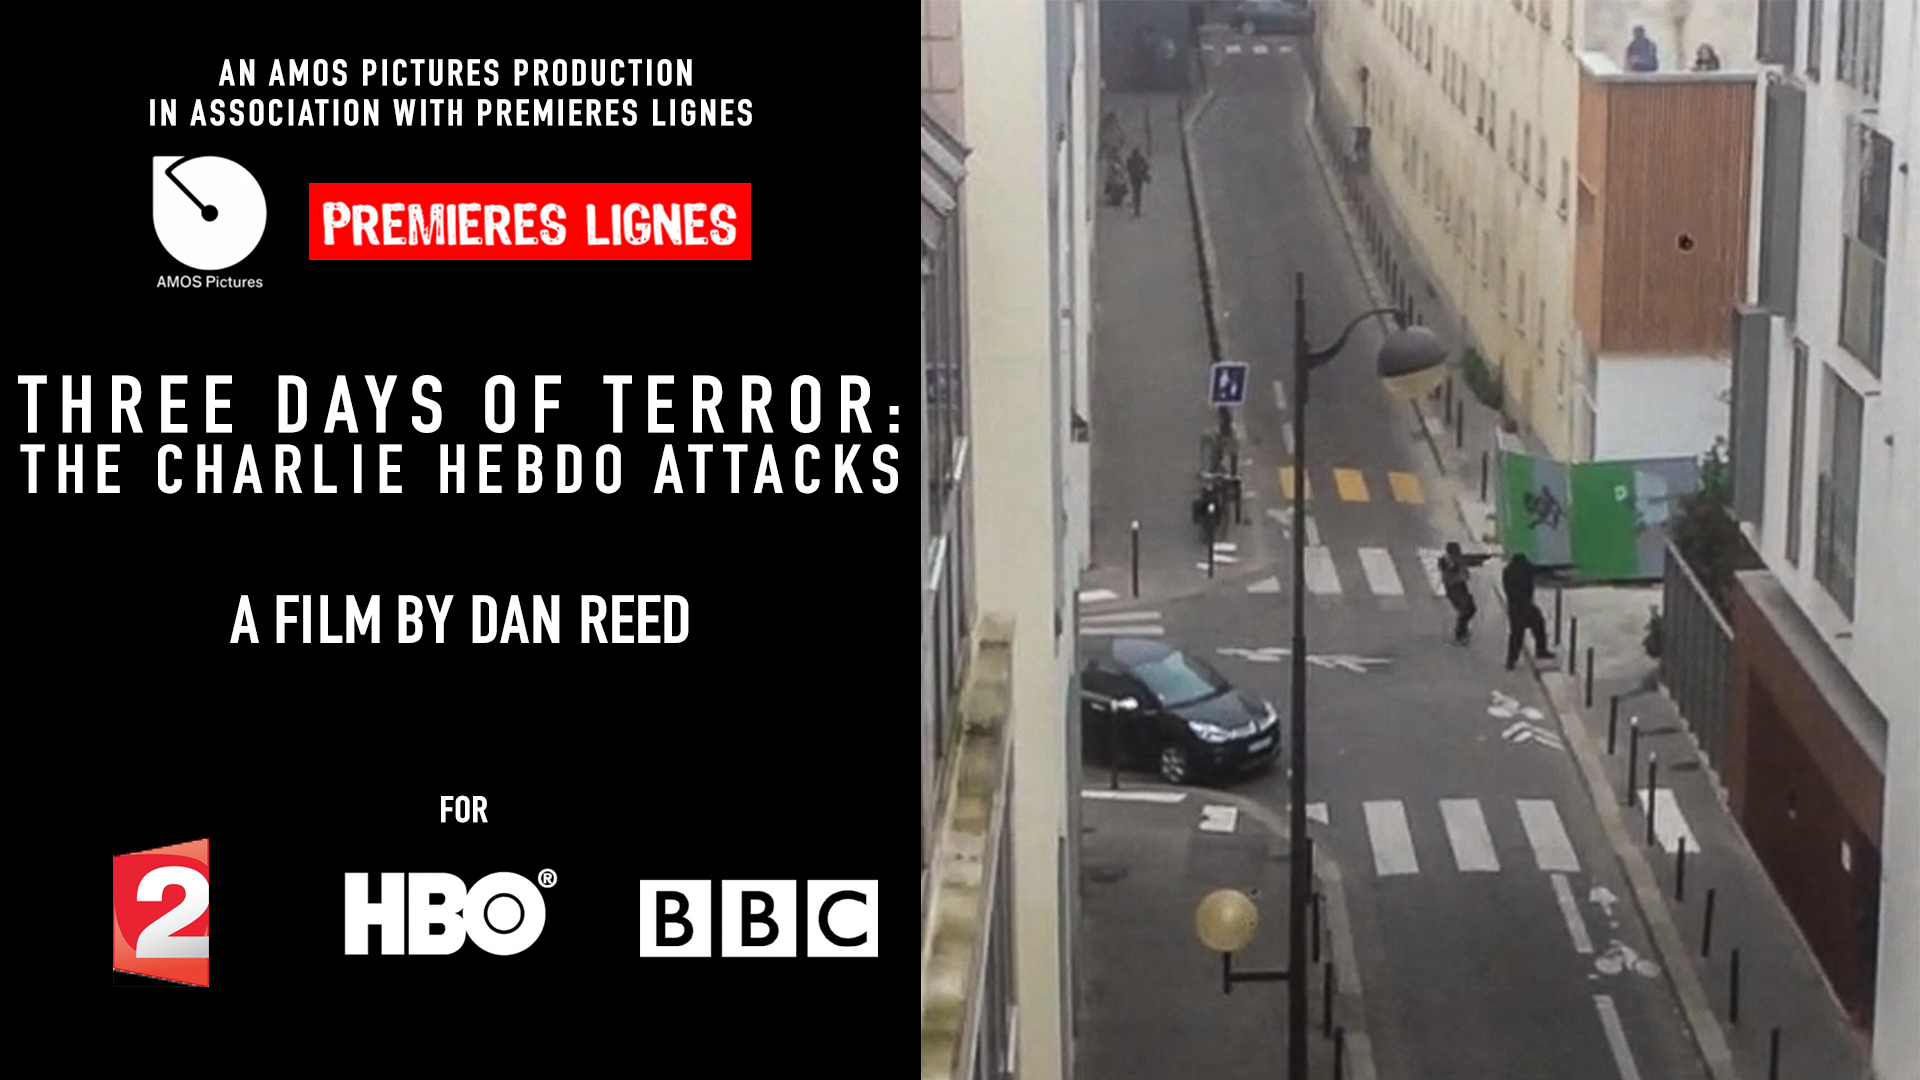 Three Days of Terror: Charlie Hebdo Attacks, HBO, Composer